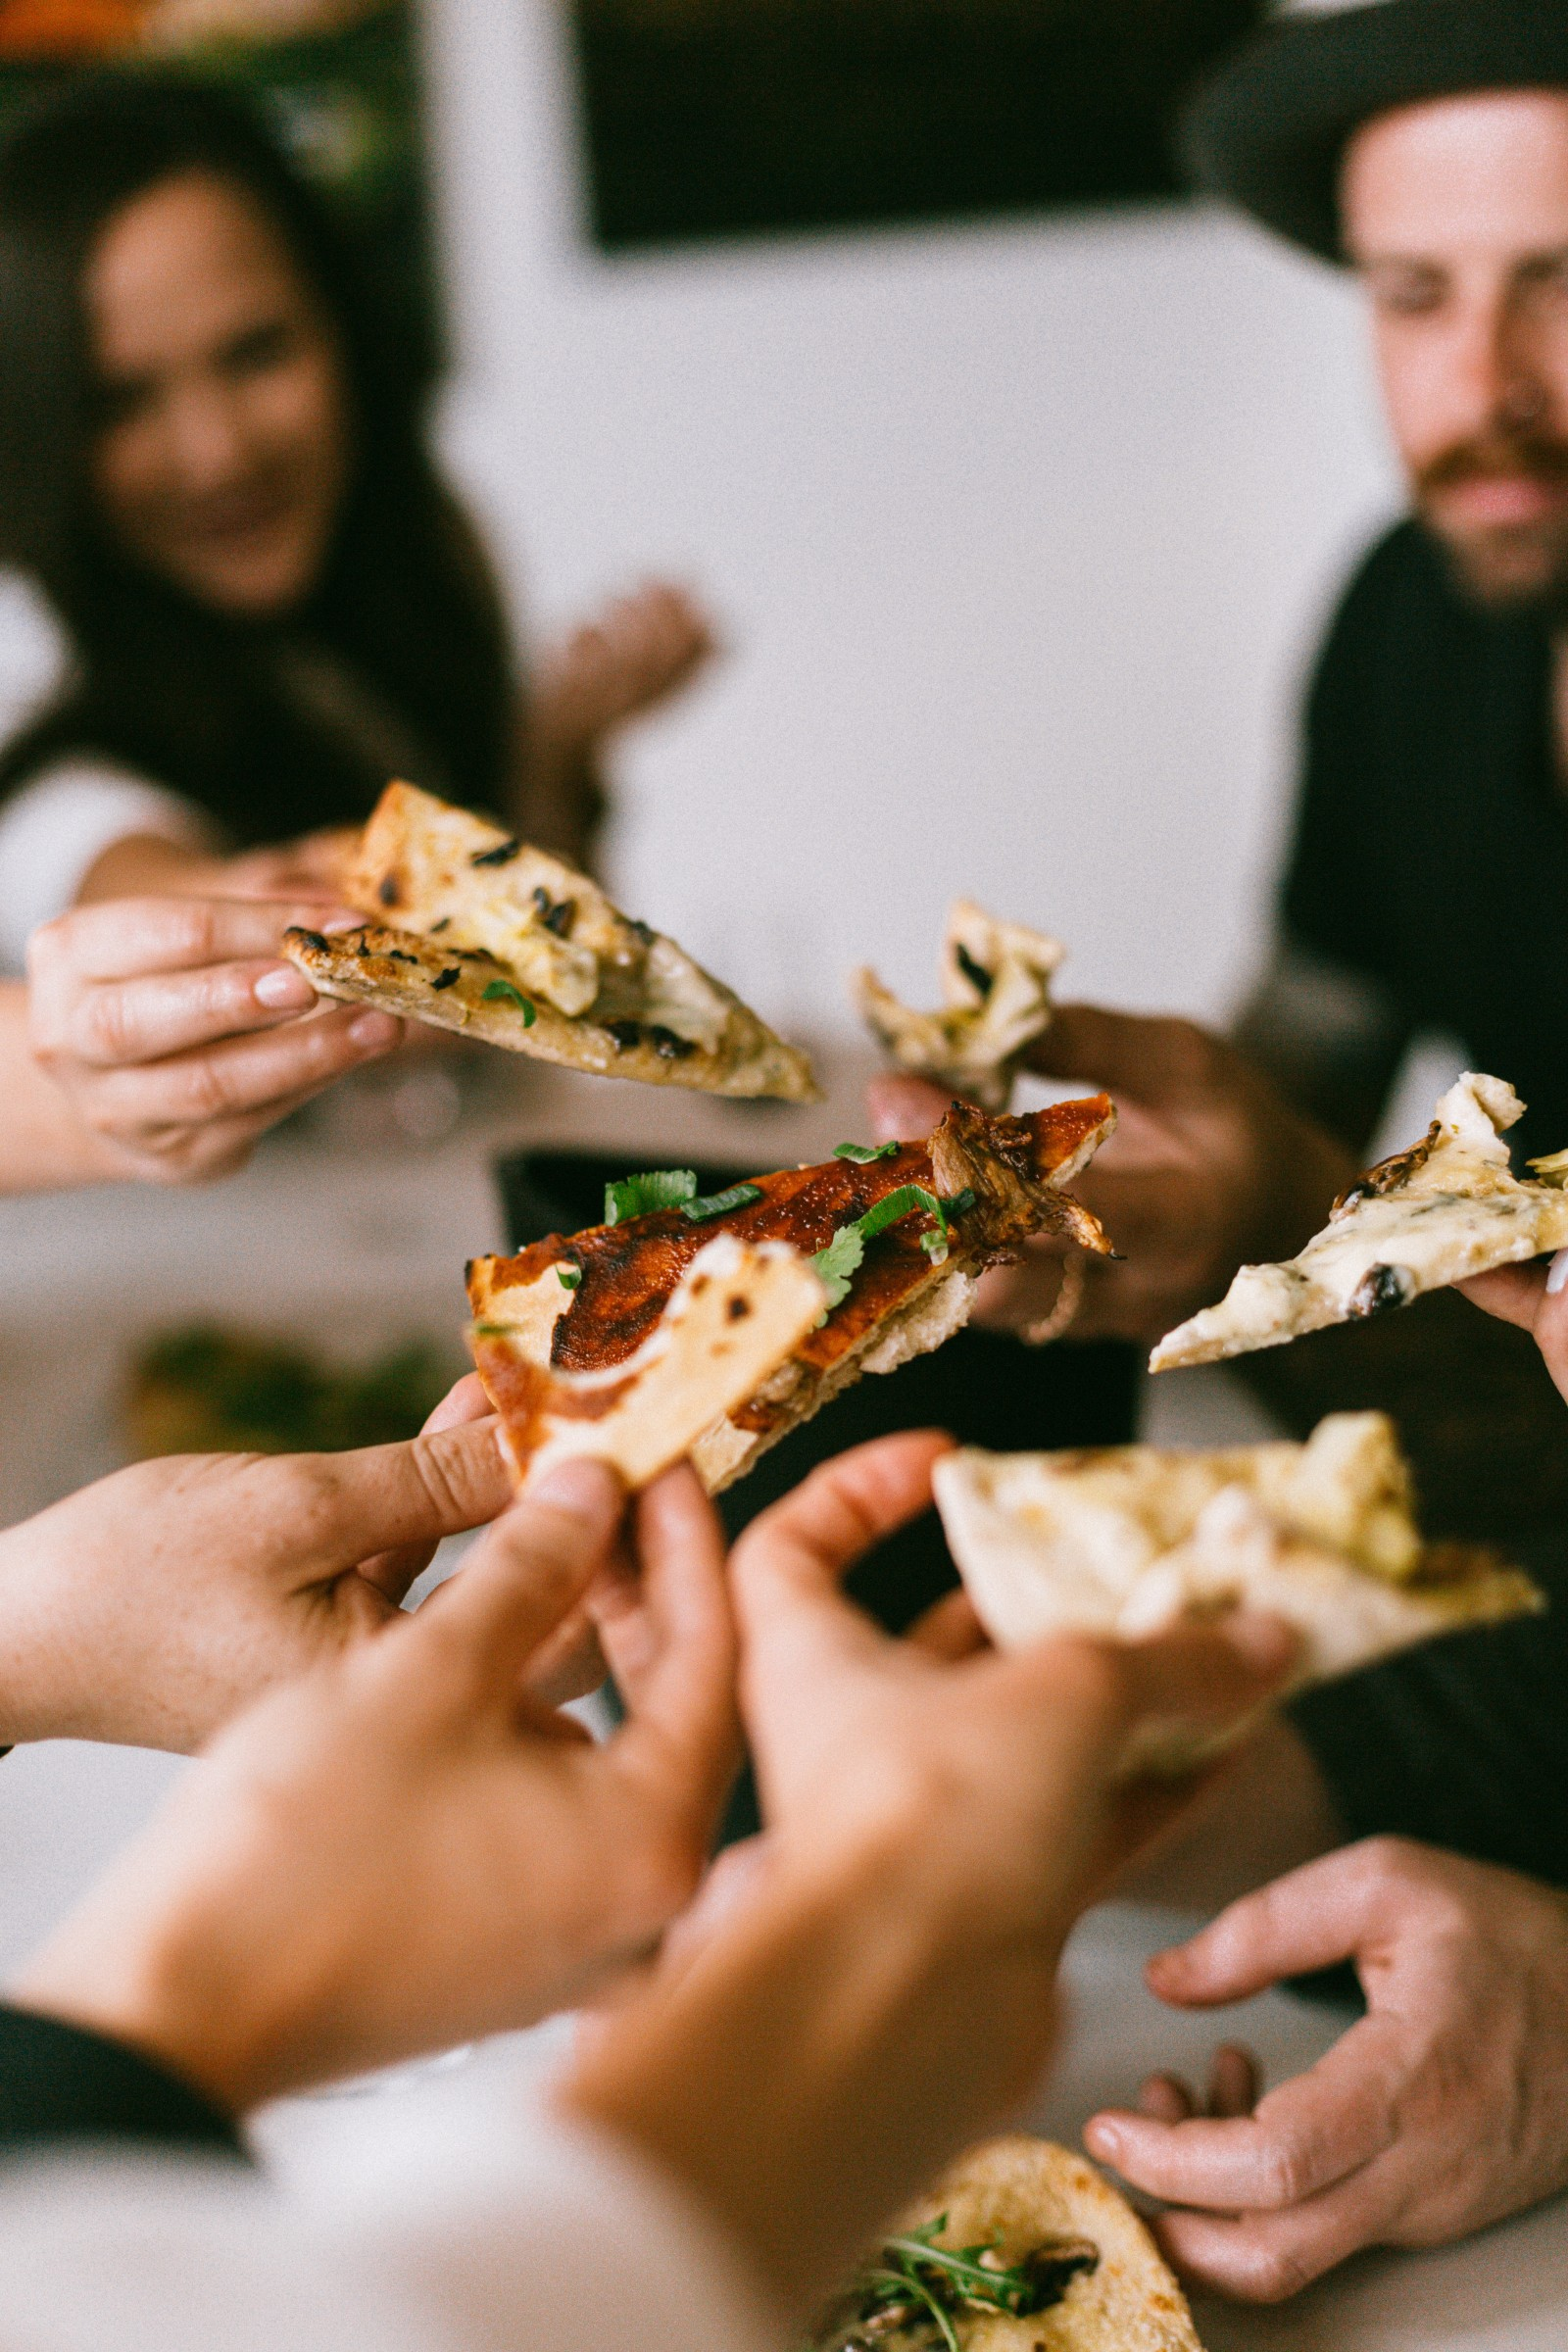 People sharing slices of pizza